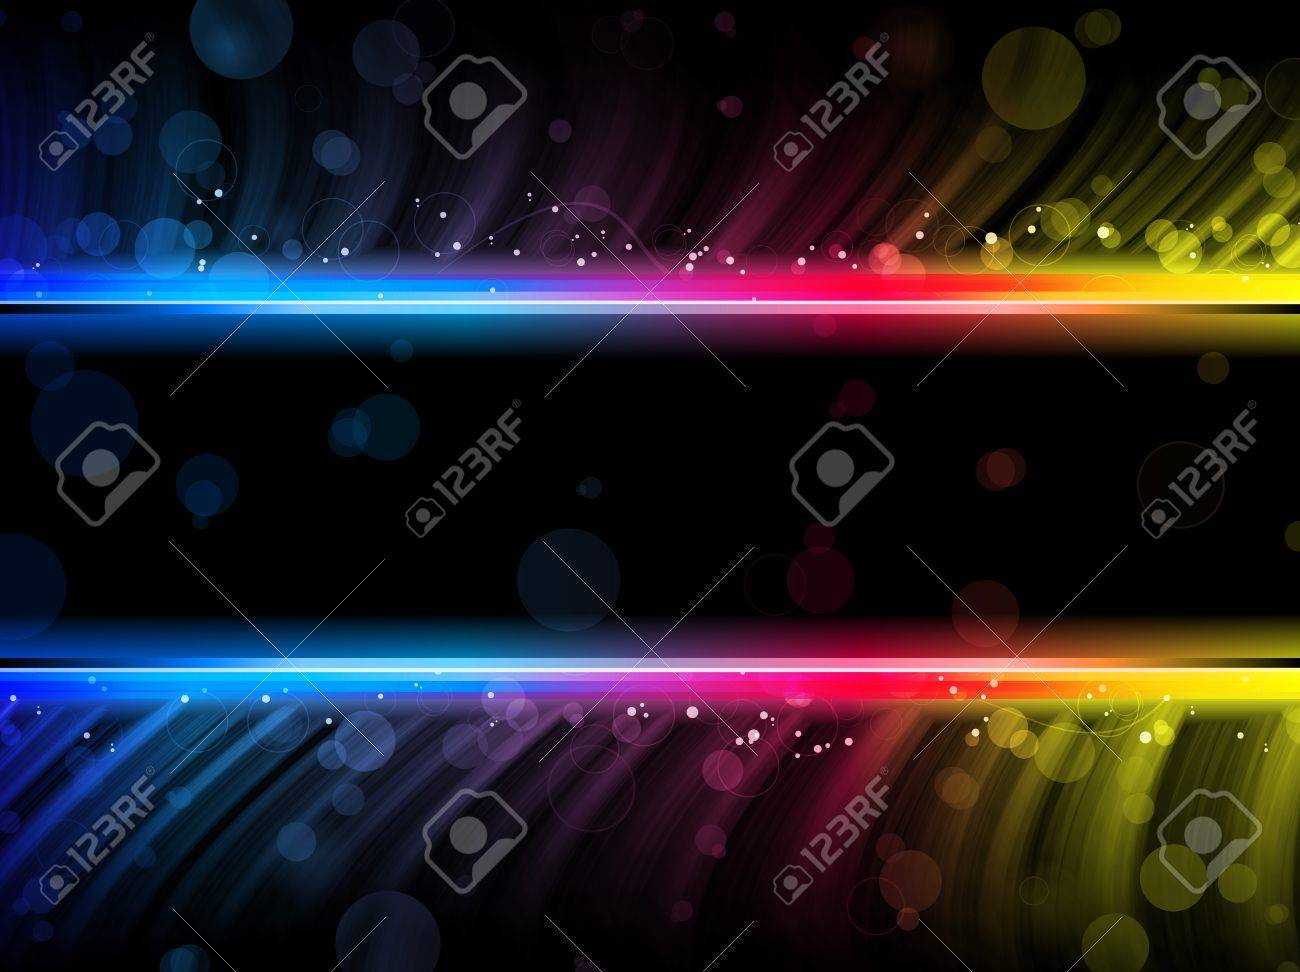 Disco Abstract Colorful Waves on Black Background Stock Photo - 9124424